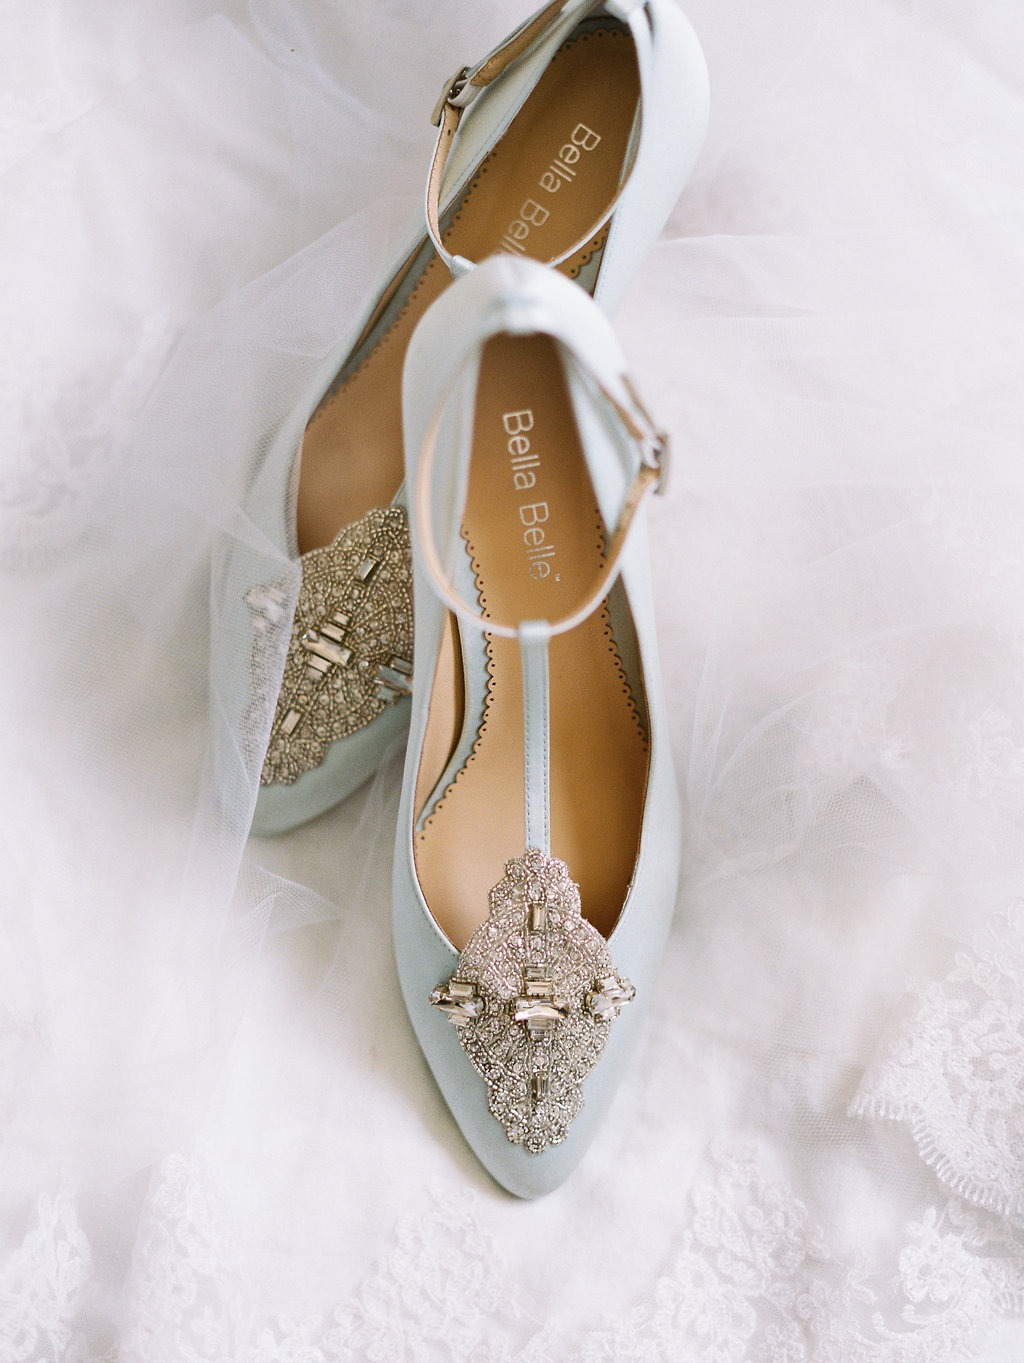 A 'something blue' and 'something new' addition to your wedding attire, featuring a Great Gatsby inspired low heel kitten heel wedding